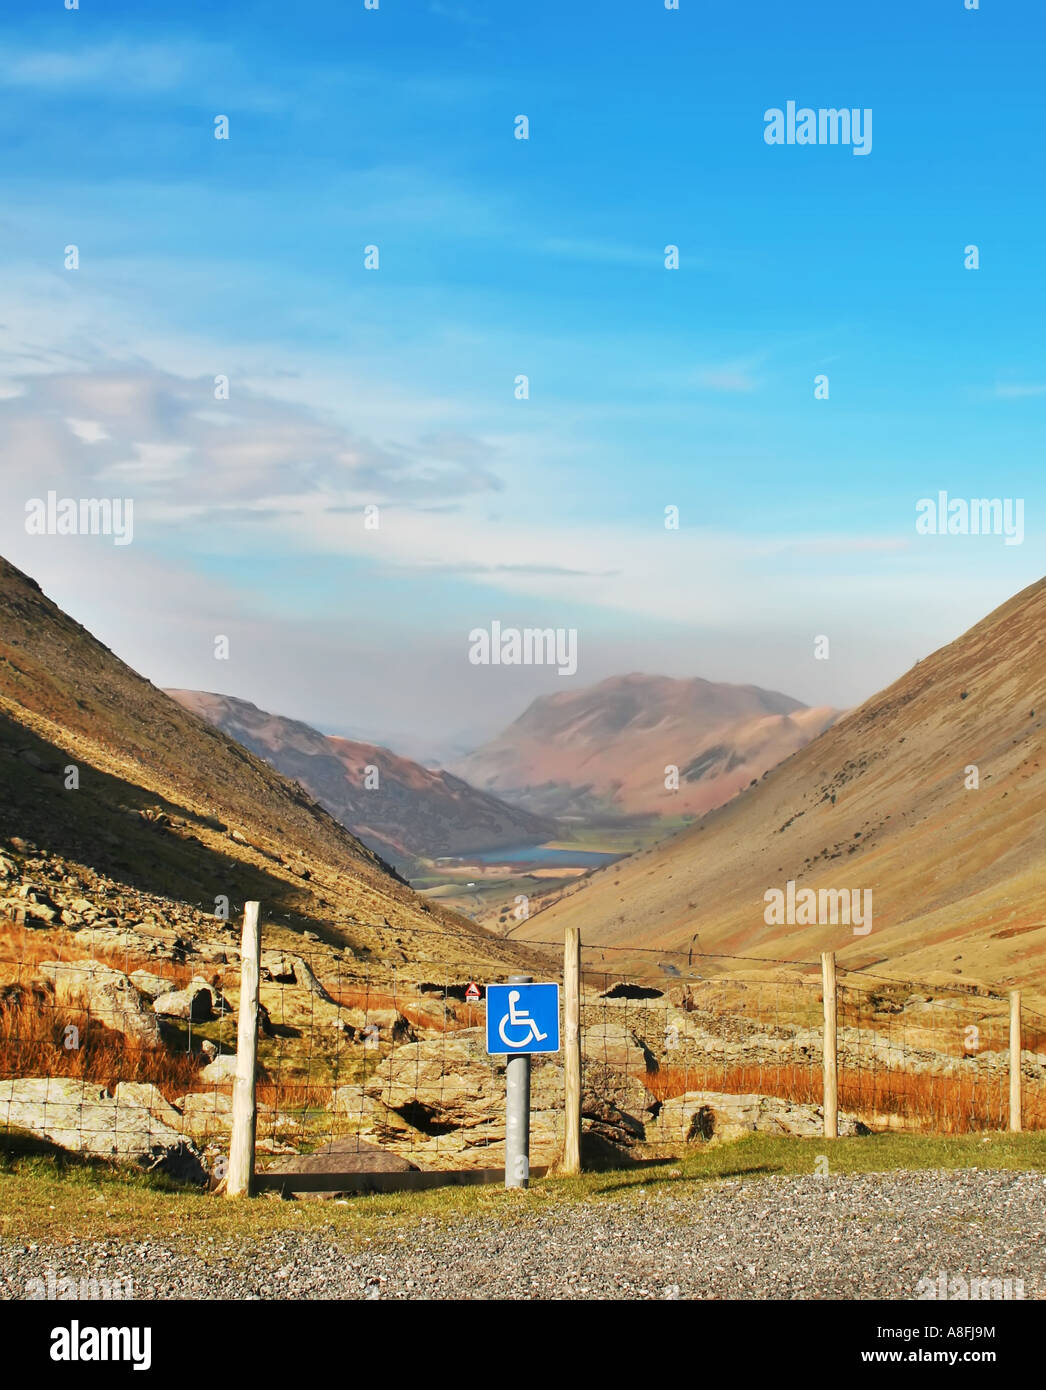 Disabled Parking with a View - Stock Image